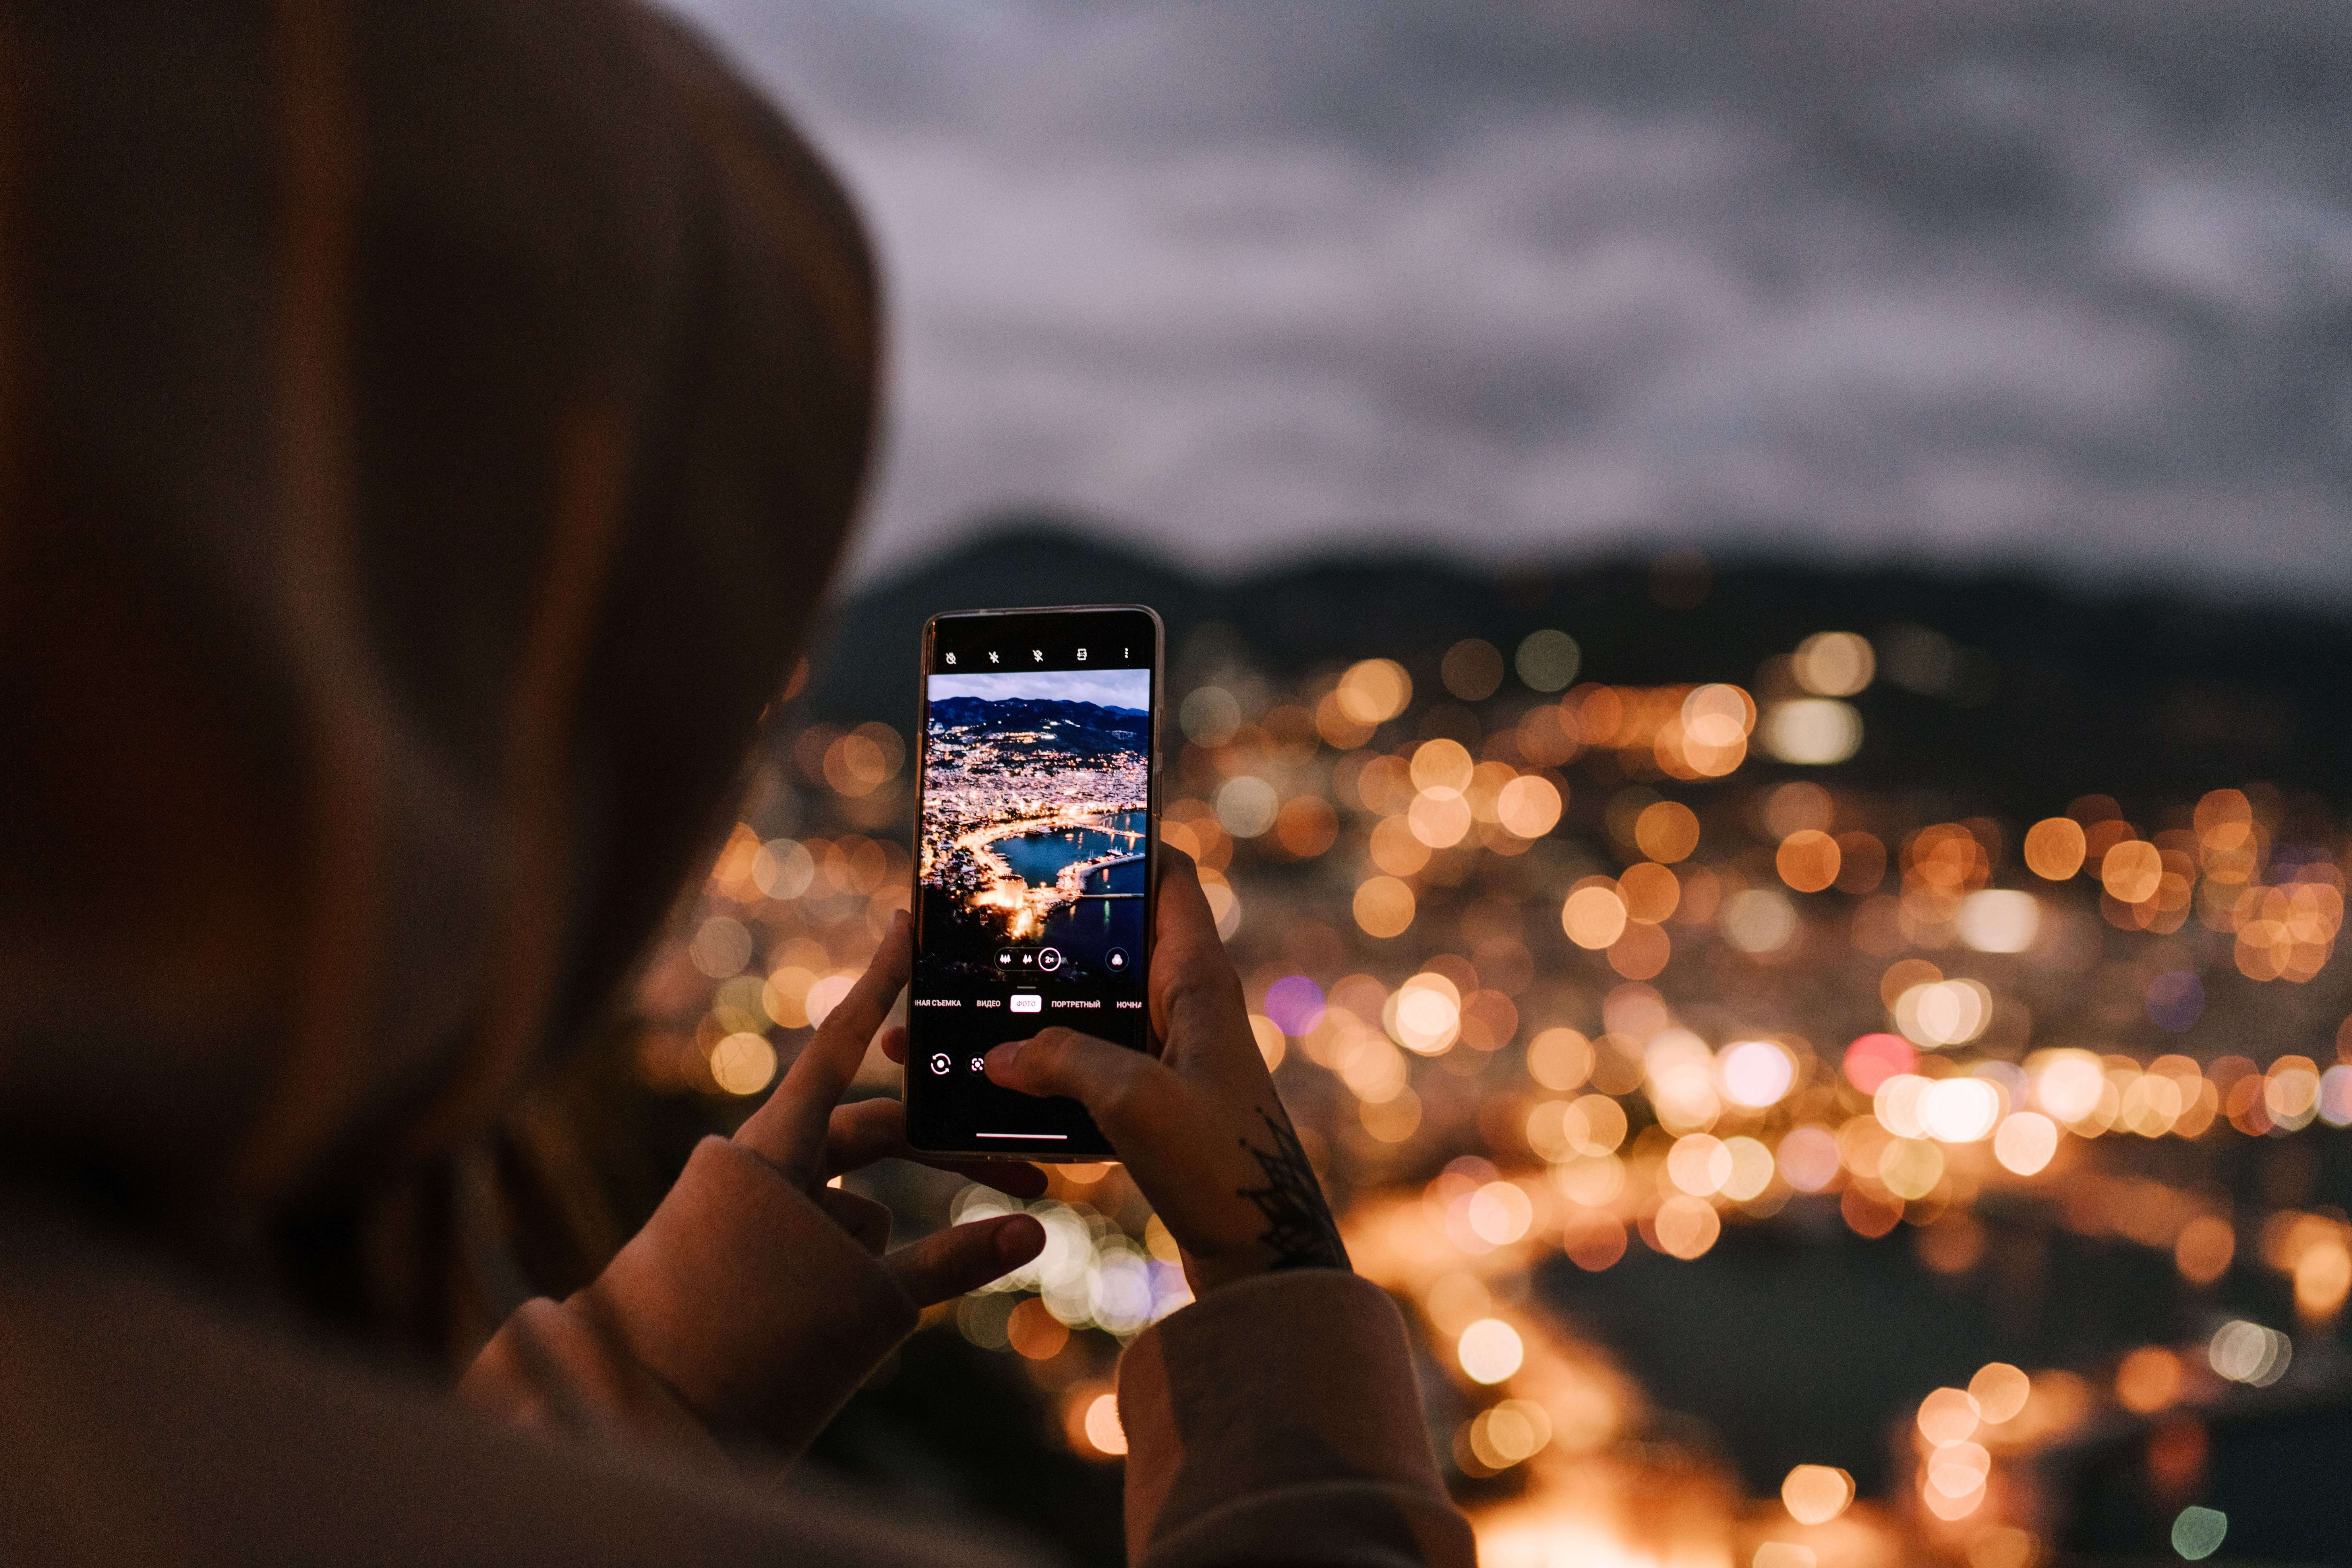 An over-the-shoulder view of someone taking a photo using their phone. Photo courtesy of Julia Volk on Pexels.